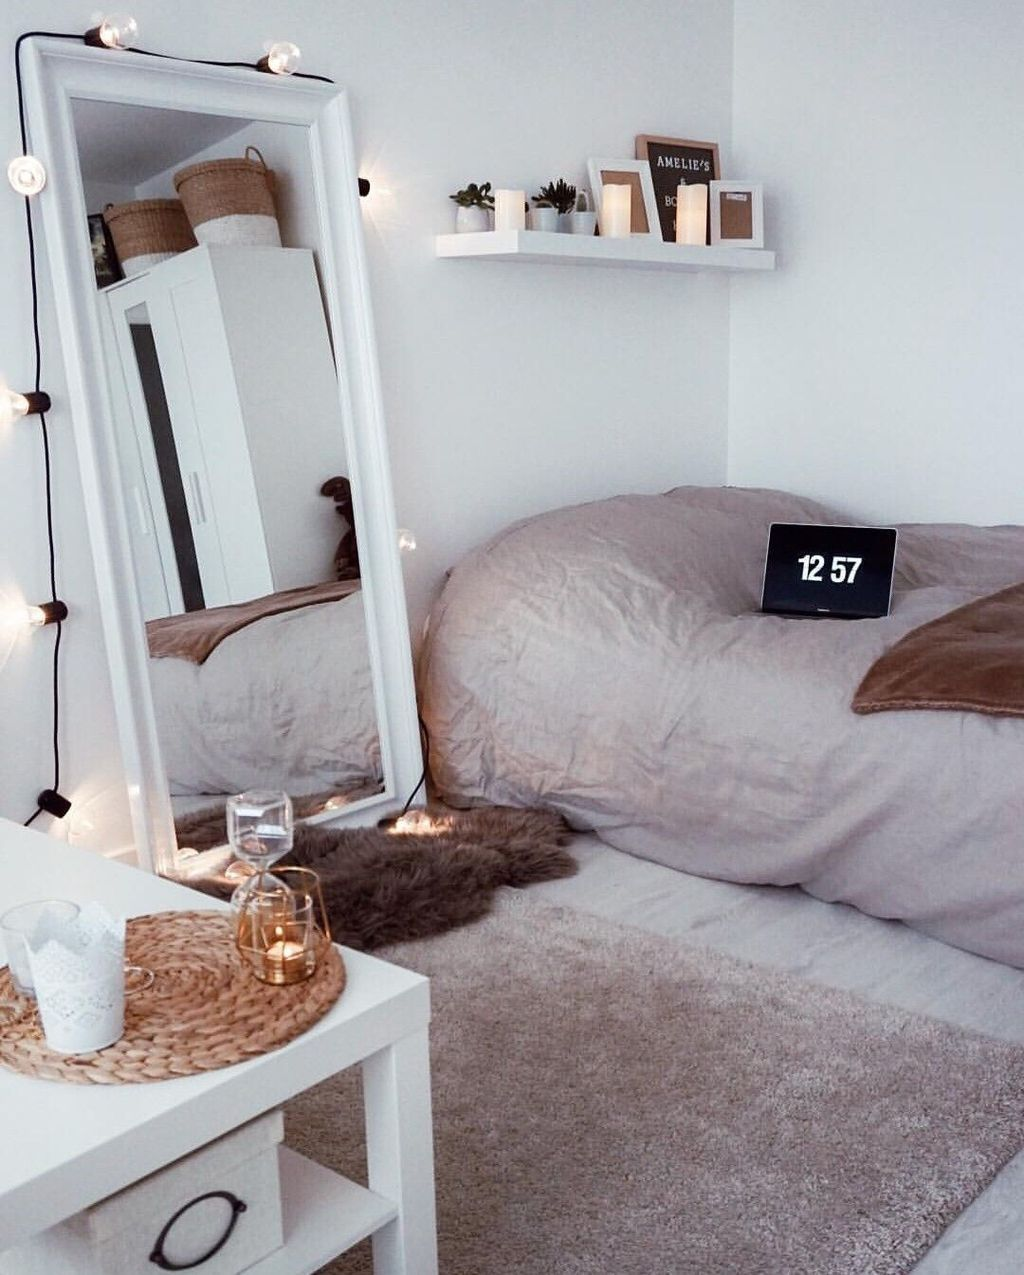 43 Creative DIY Decor Ideas For Bedroom images